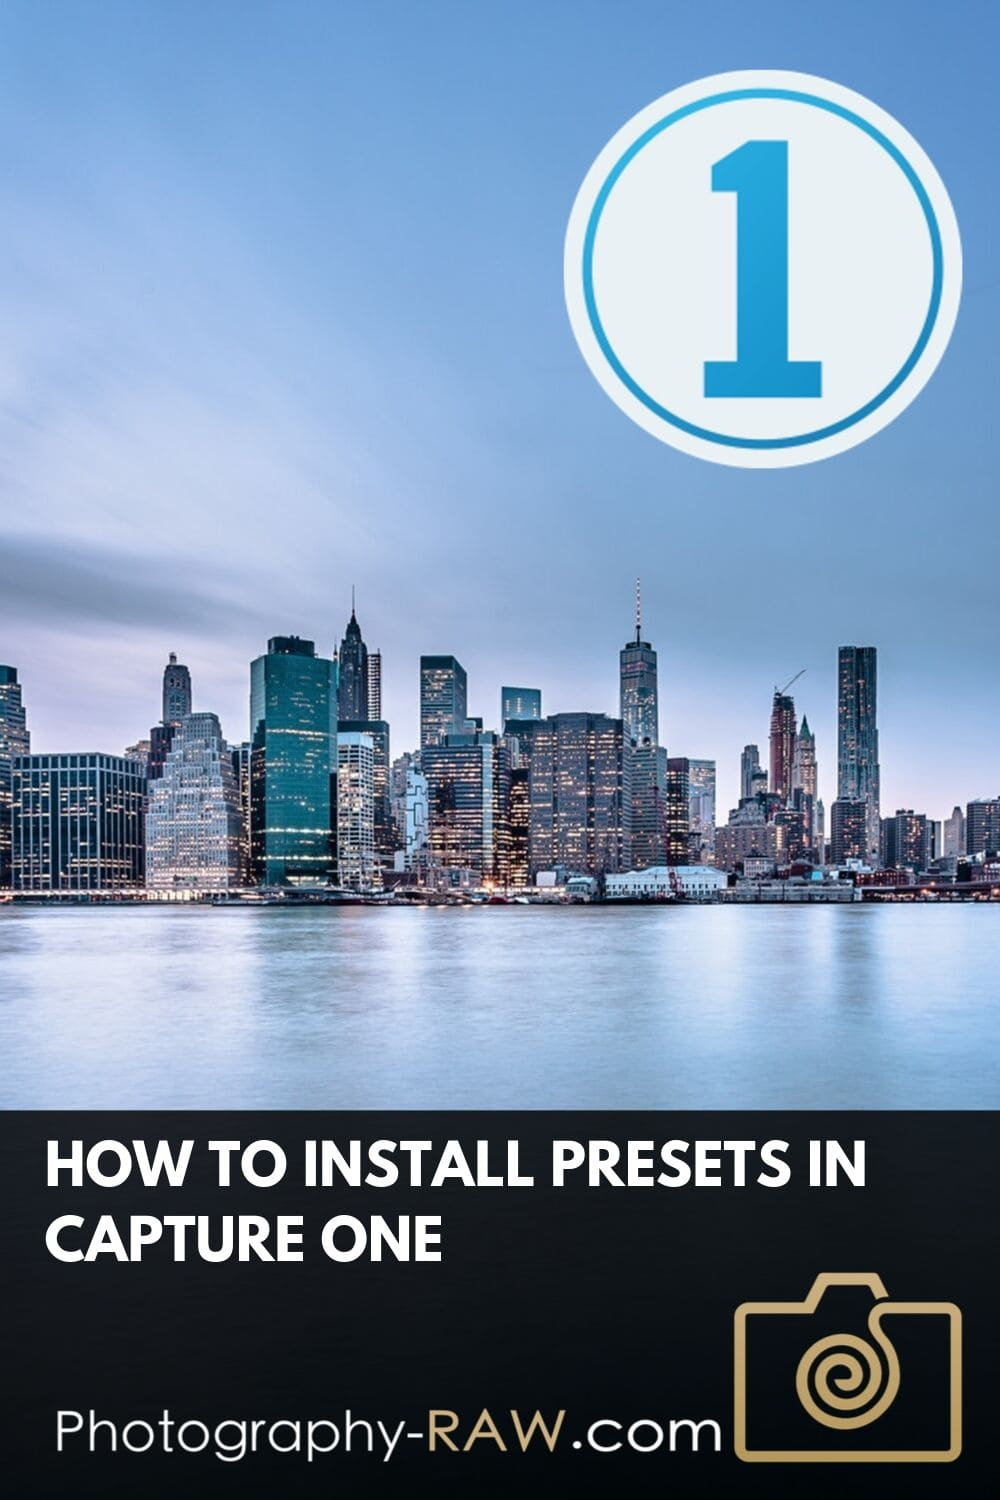 How to Install Presets in Capture One